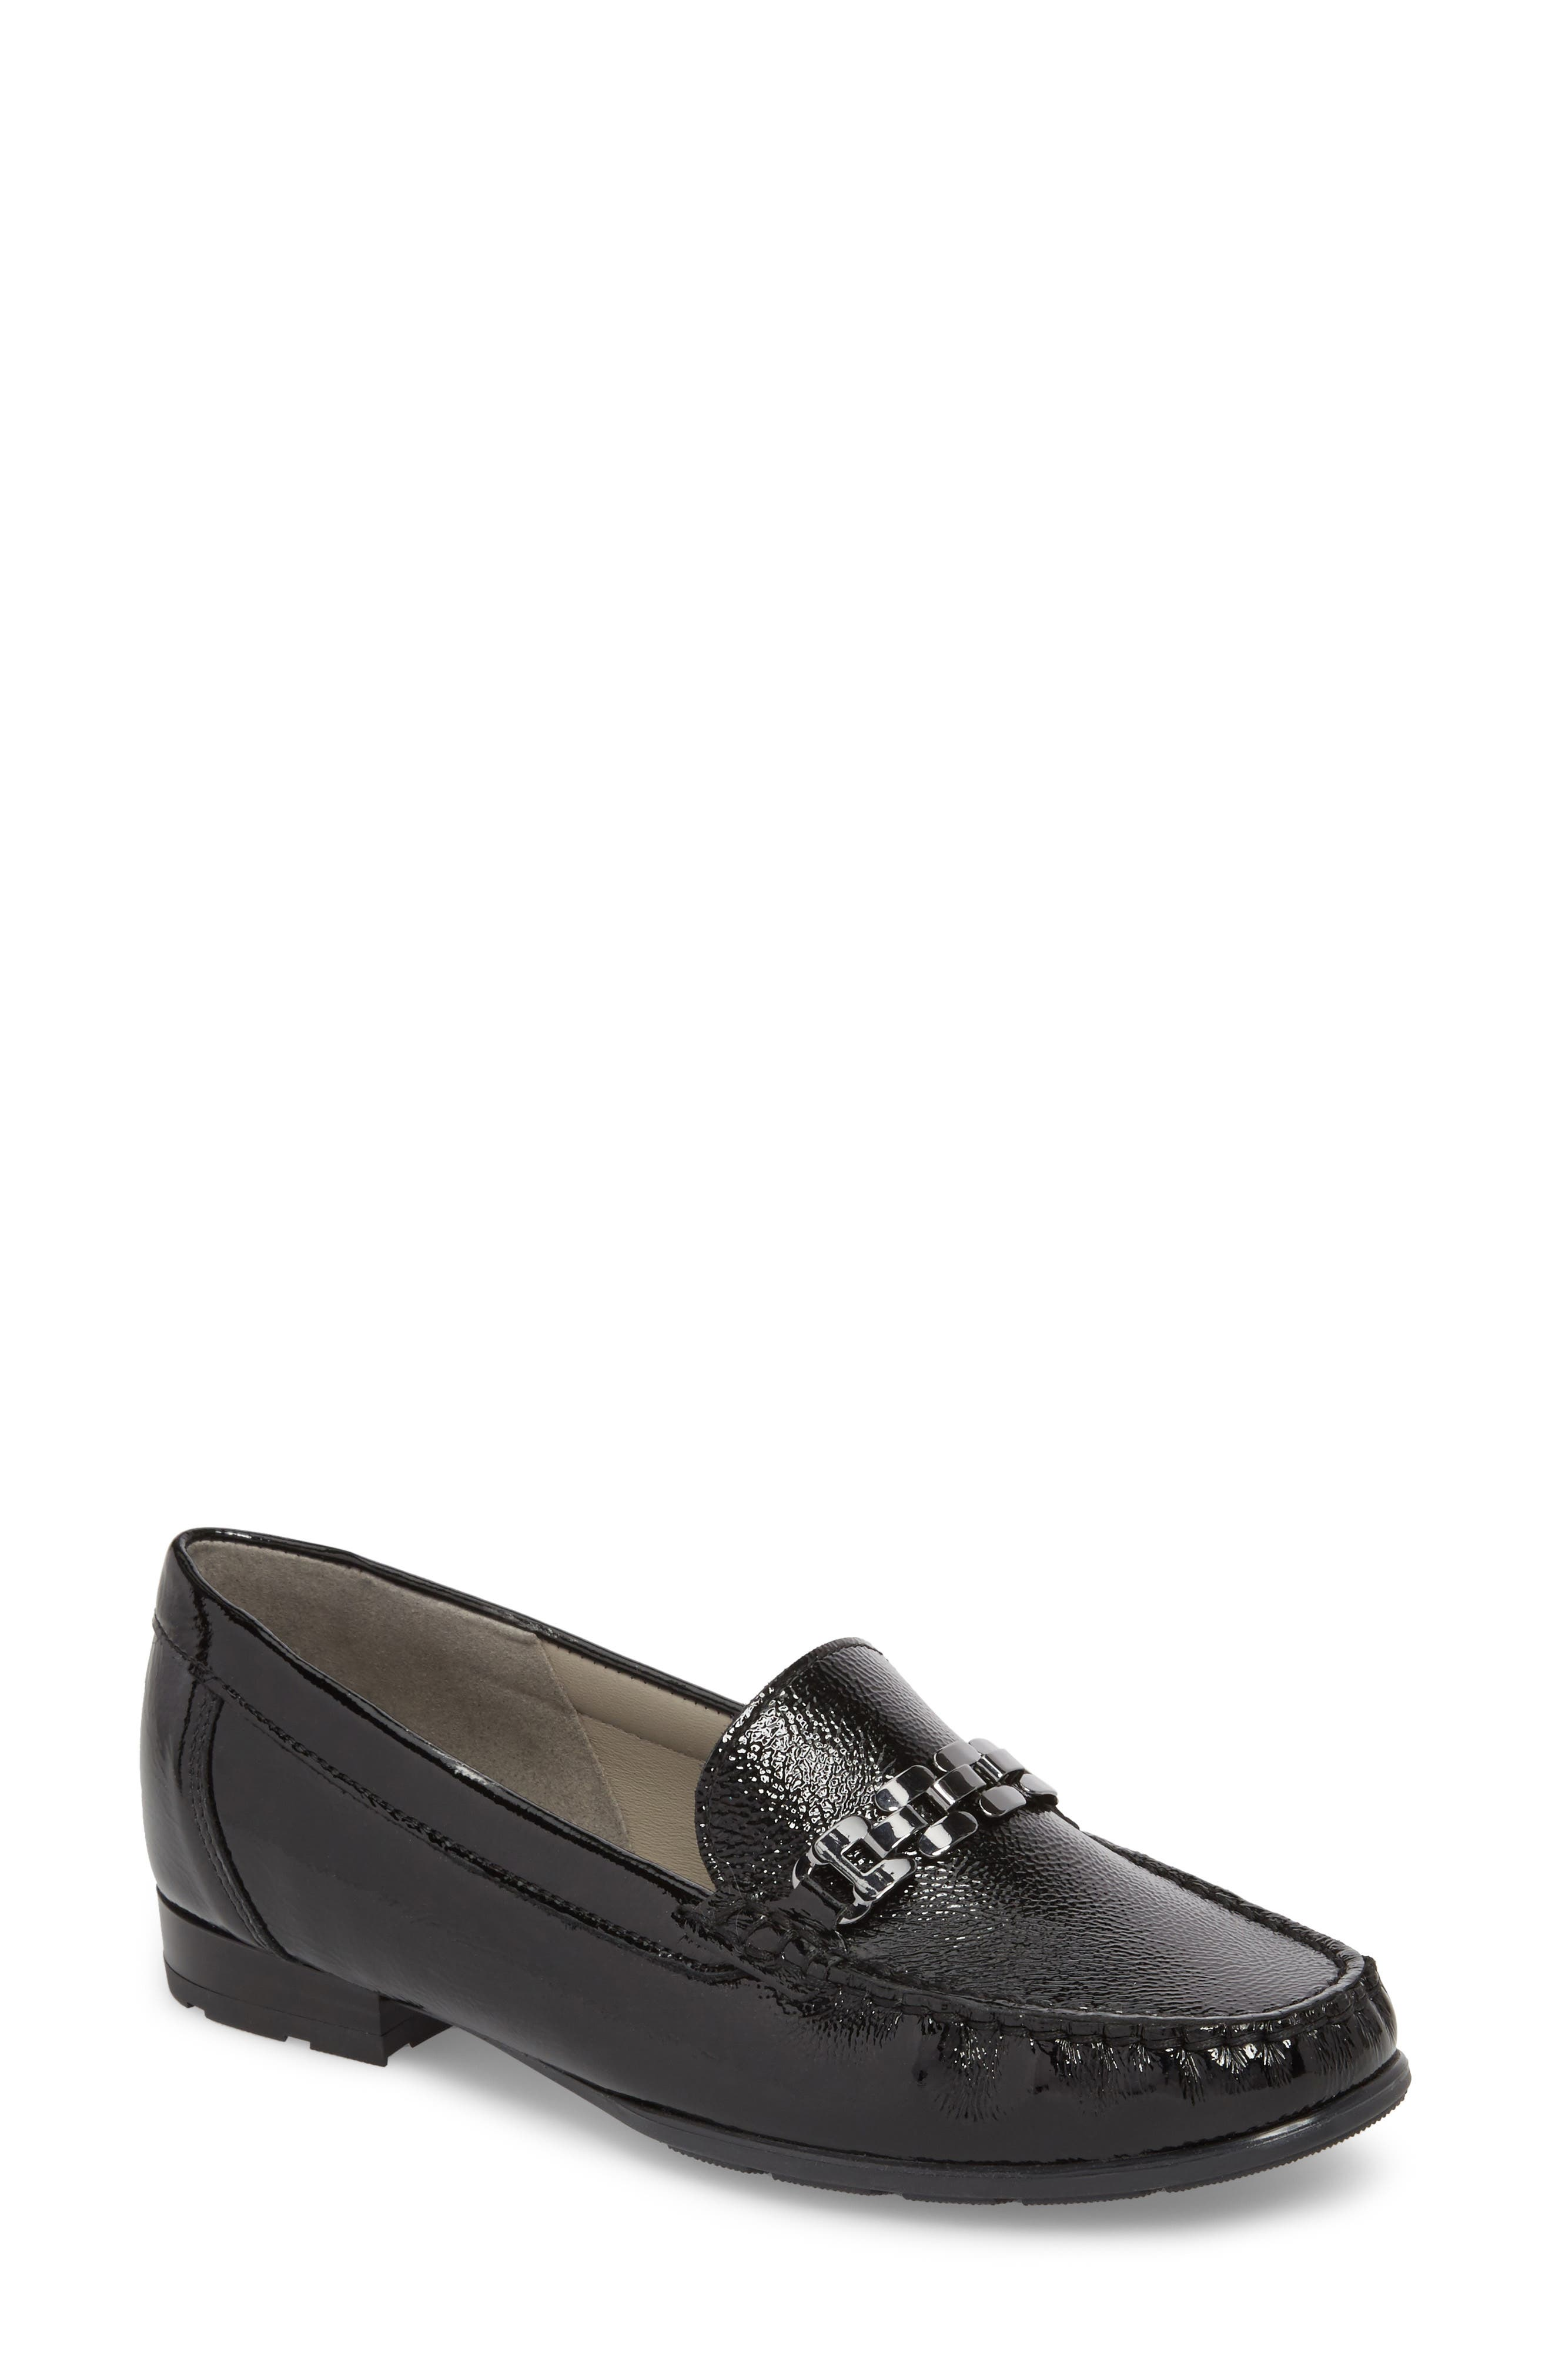 Natalya Loafer,                             Main thumbnail 1, color,                             BLACK LEATHER